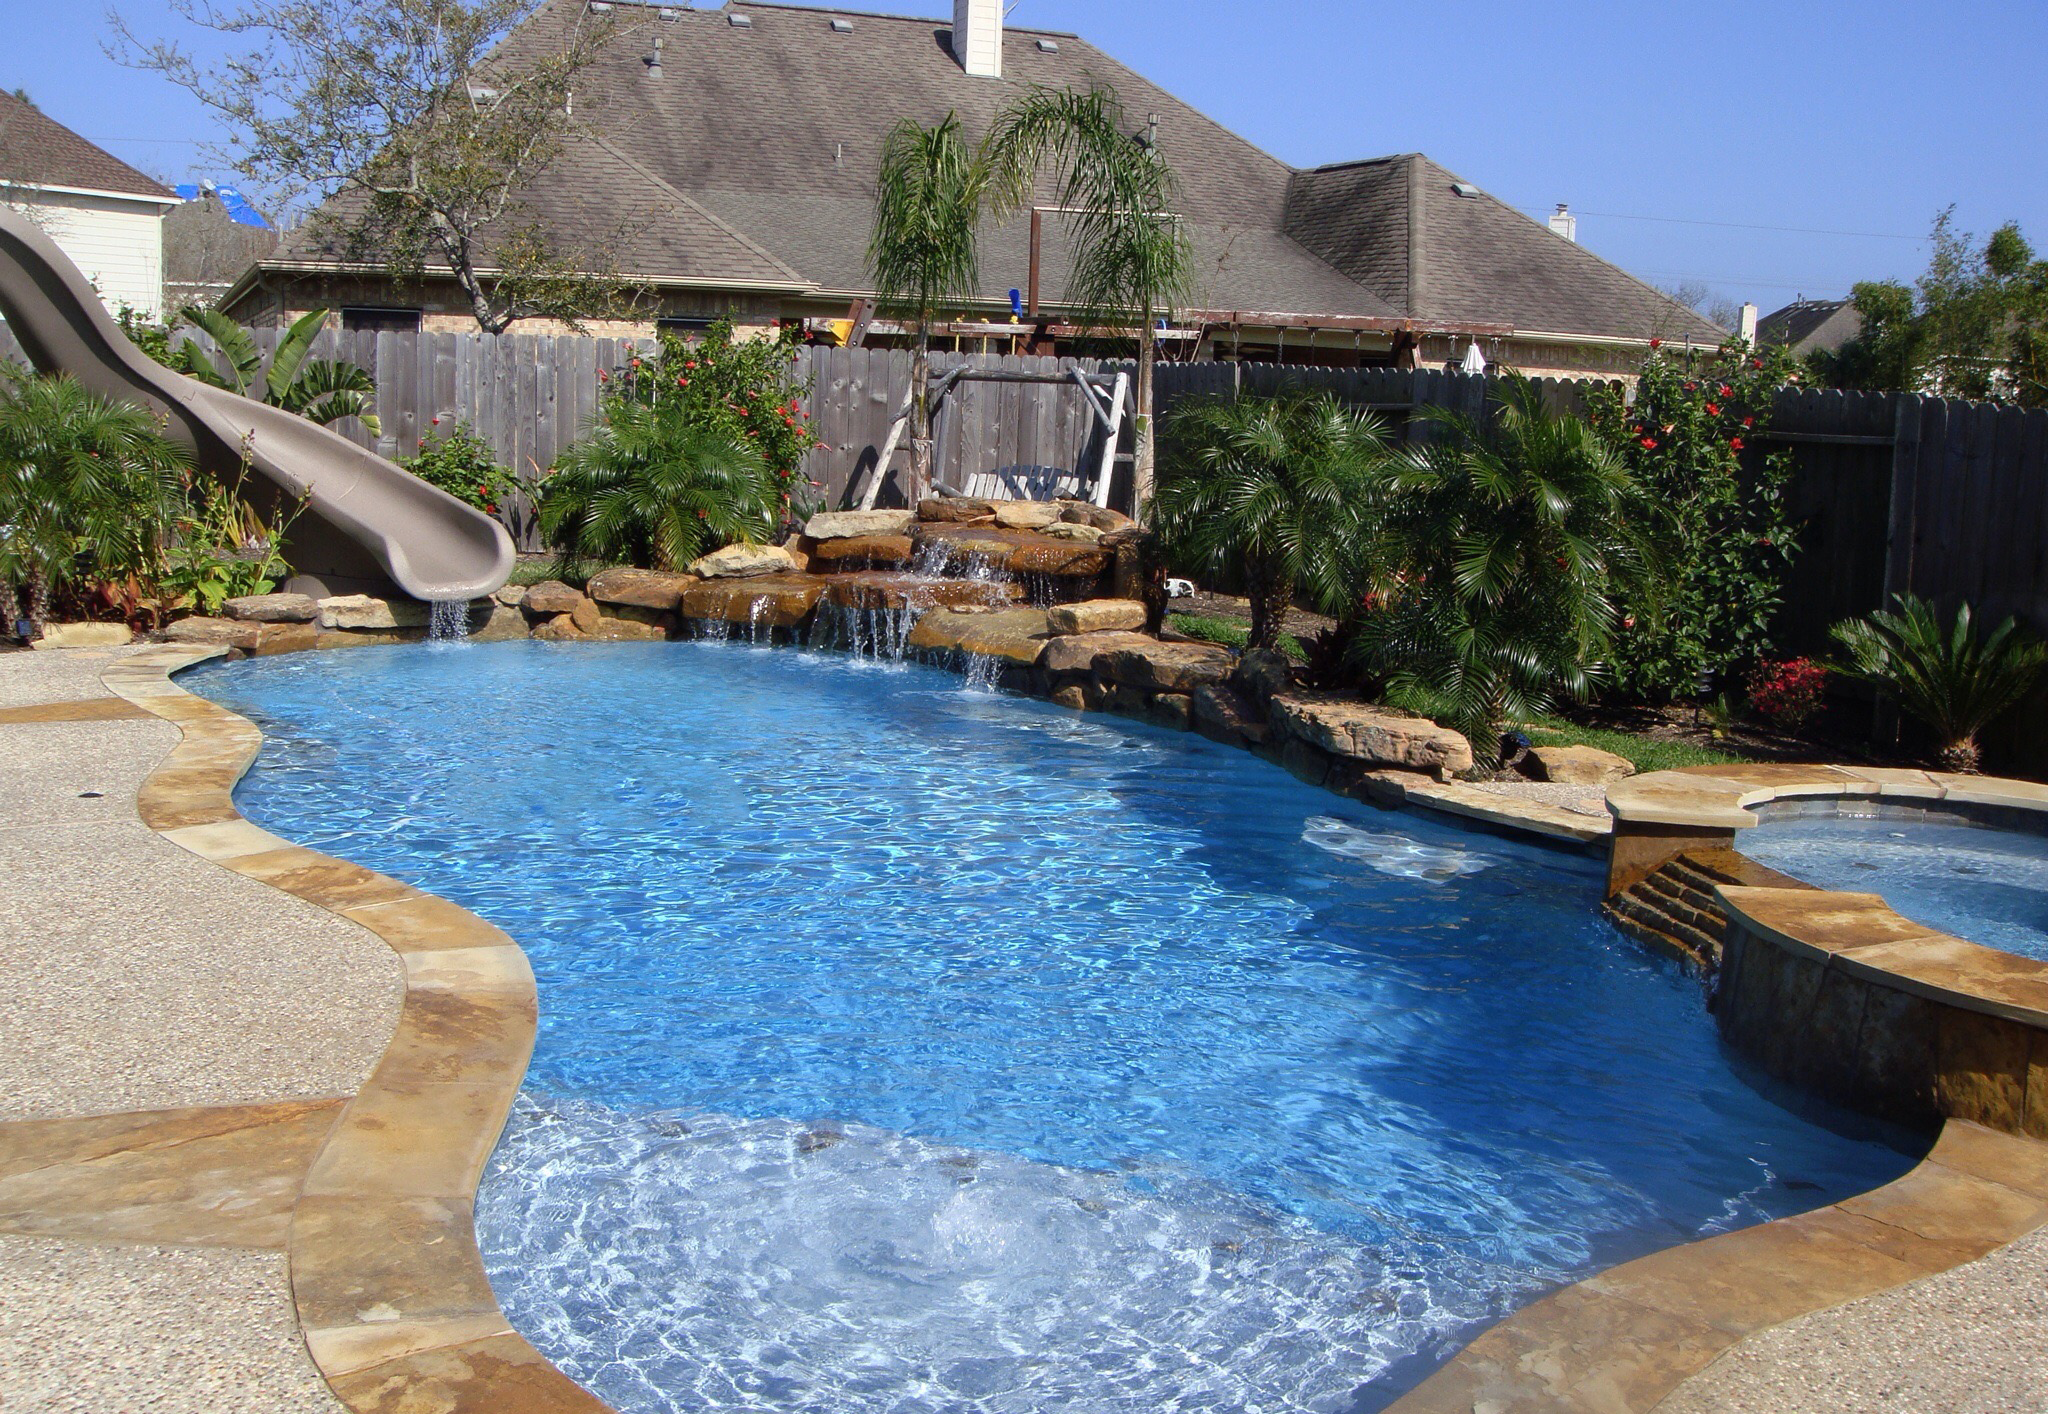 Friendswood  Backyard Amenities